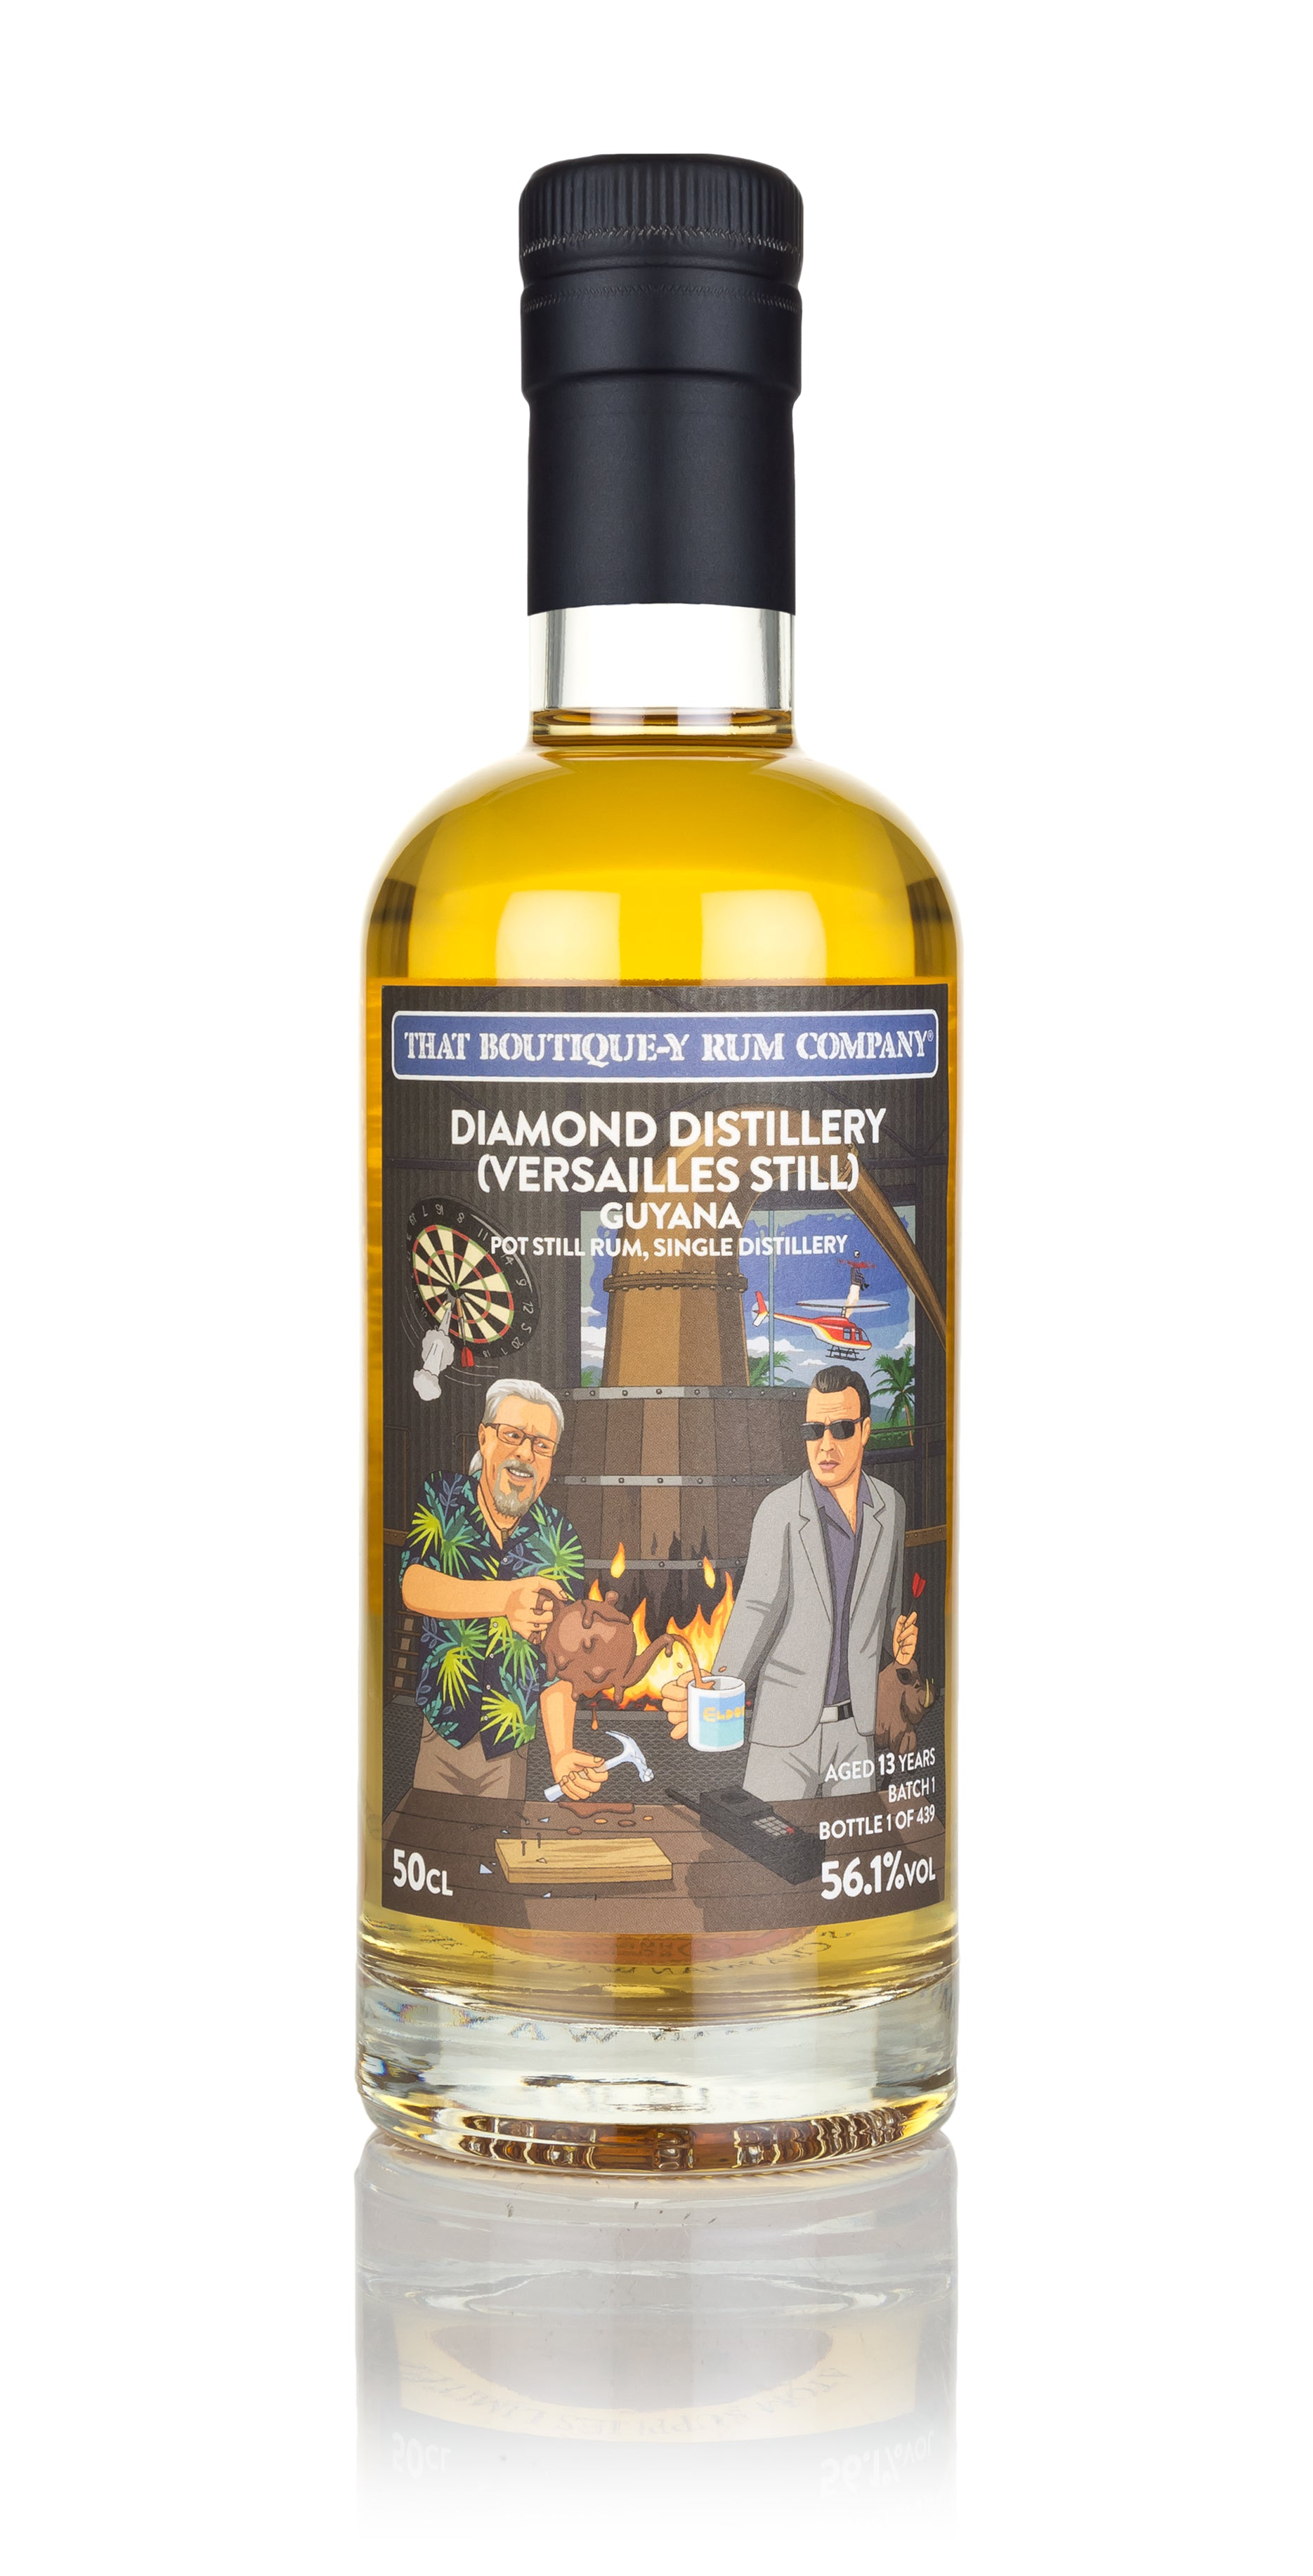 Diamond Distillery (Versailles Still)